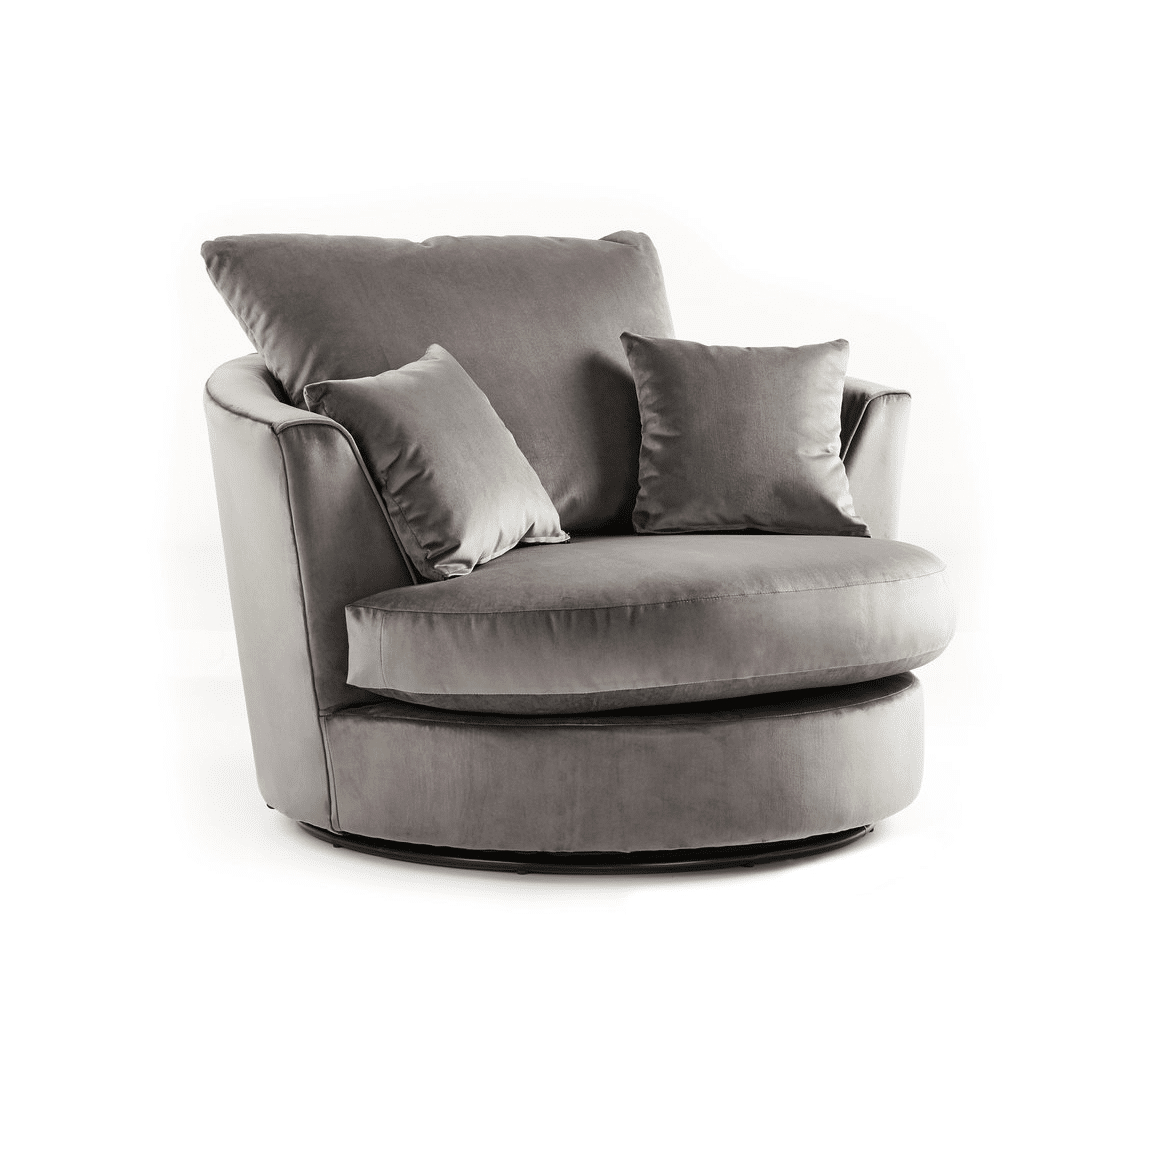 Crushed Velvet Furniture | Sofas, Beds, Chairs, Cushions Regarding Charcoal Swivel Chairs (View 2 of 20)